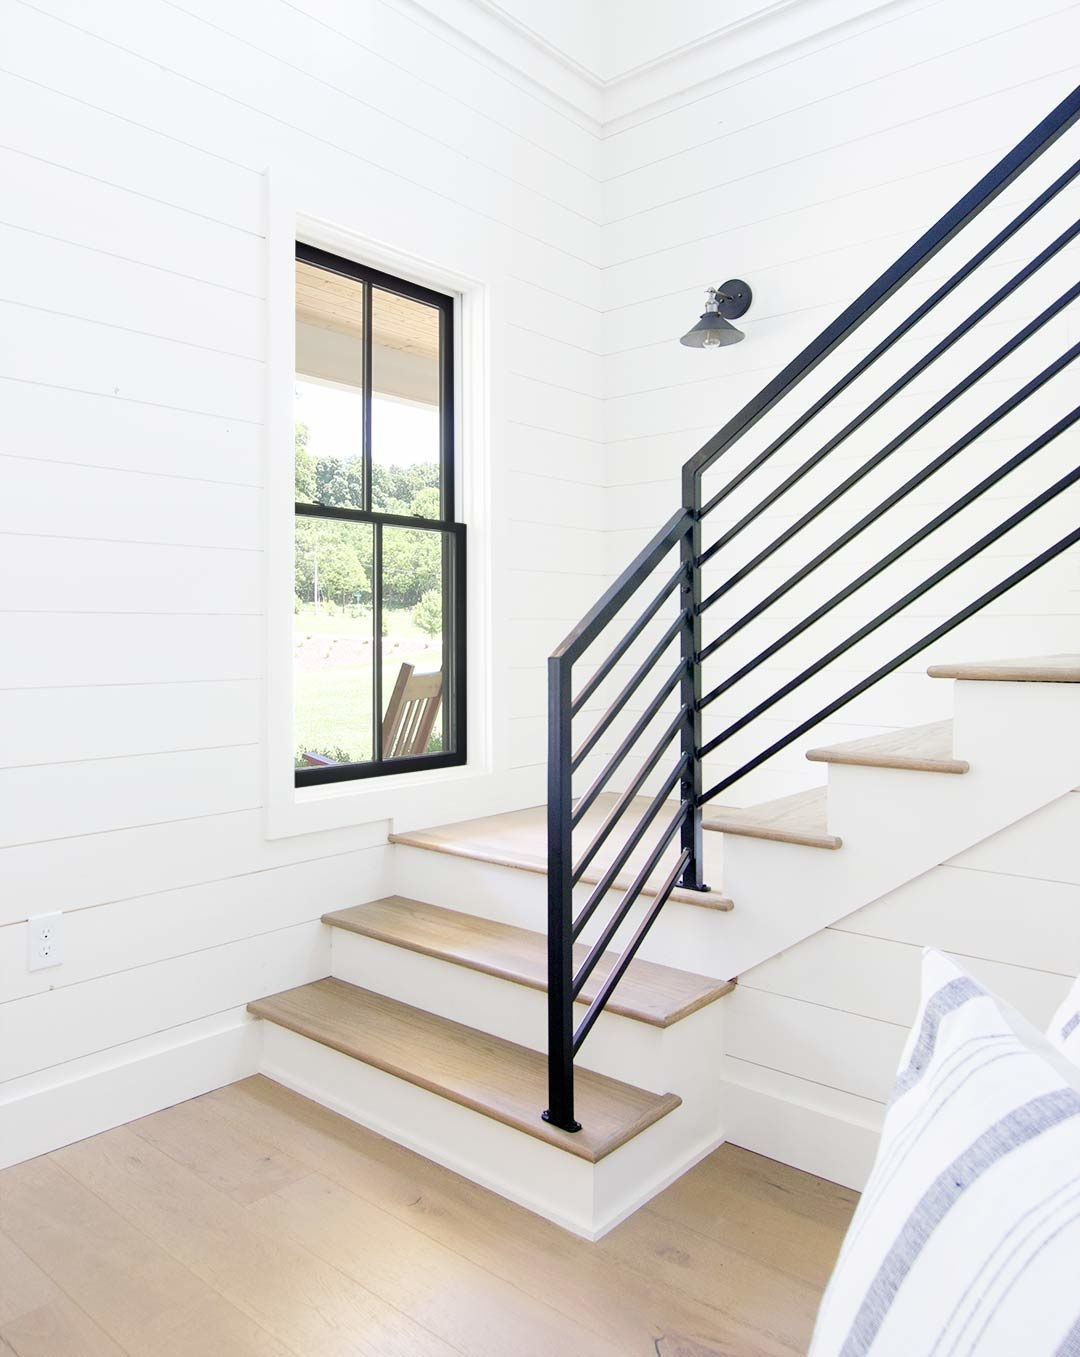 How To Match Solid Stair Treads To Prefinished Hardwood Flooring | Prefinished Oak Stair Treads | Natural Red Oak | Risers | Hardwood Flooring | Stair Parts | Flooring